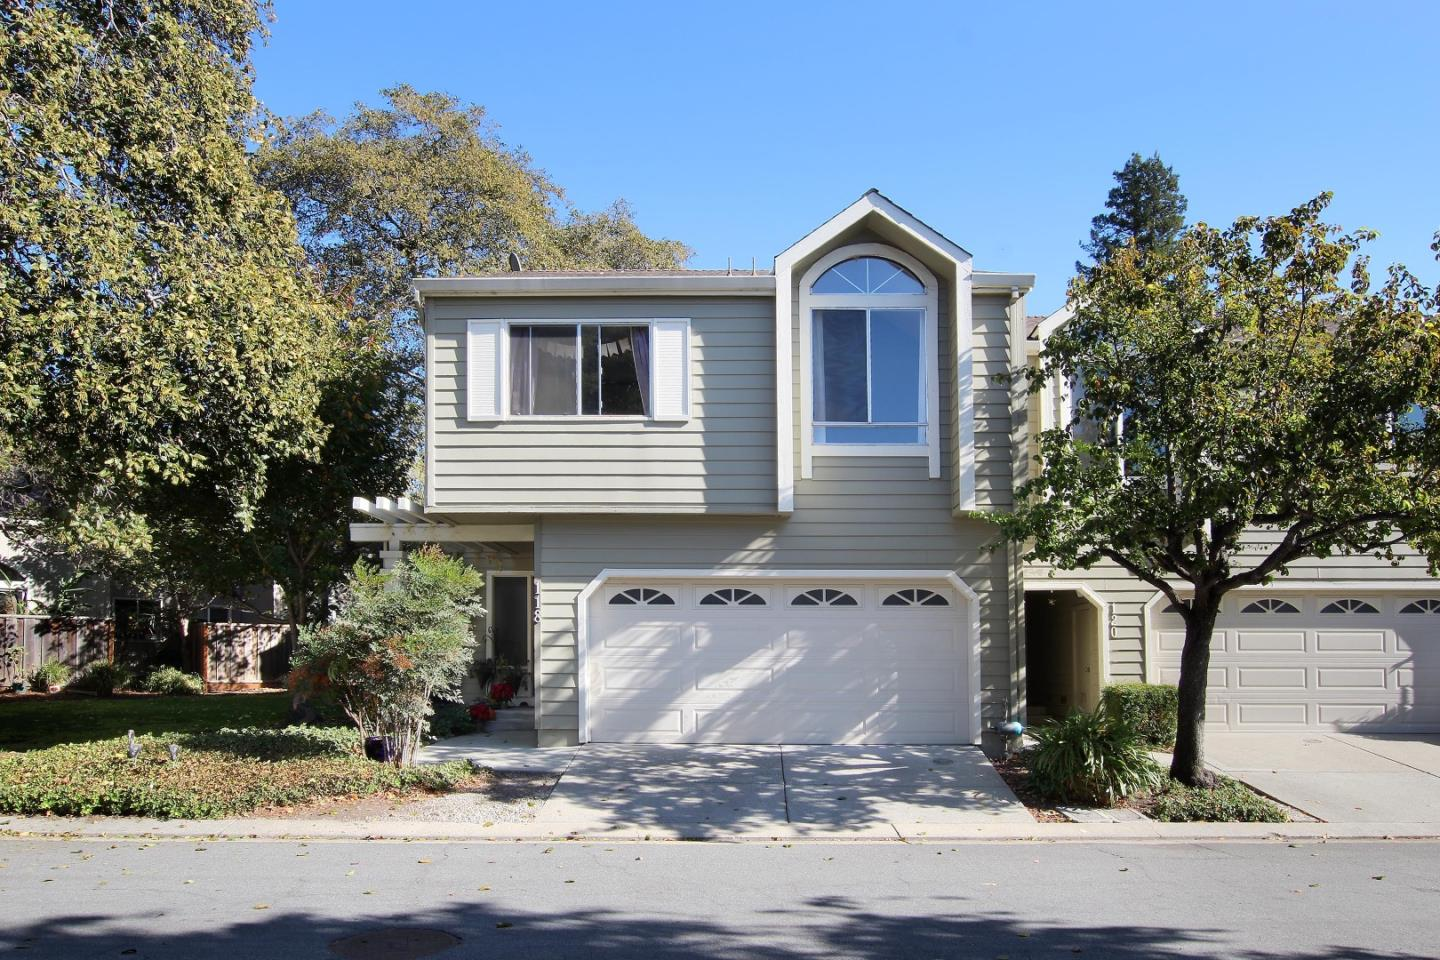 Nestled in a lovely Santa Cruz neighborhood, in the highly desirable Brookside Glen community is this peaceful 3 bedroom 2.5 bath townhouse. This development sits alongside the Branciforte Creek, surrounded by manicured greenery, tall redwoods, a conveniently close to walking paths that connect you to all main city streets for a perfect blend of city and suburban living. Only one adjacent unit with lush grass, trees, and additional parking on the other side.  This two-level home has custom upgrades throughout, gorgeous wooden floors, a large spacious master bedroom with his and her sinks, modern shower with built-in bench and floating rain shower head, high vaulted ceilings, large U-shape kitchen with plenty of counter-space and modern appliances, and an open floor plan with easy access to back patio. This property and community have the essential luxuries, with a low-maintenance homeowner lifestyle close to the beach, Downtown, and the commute routes.